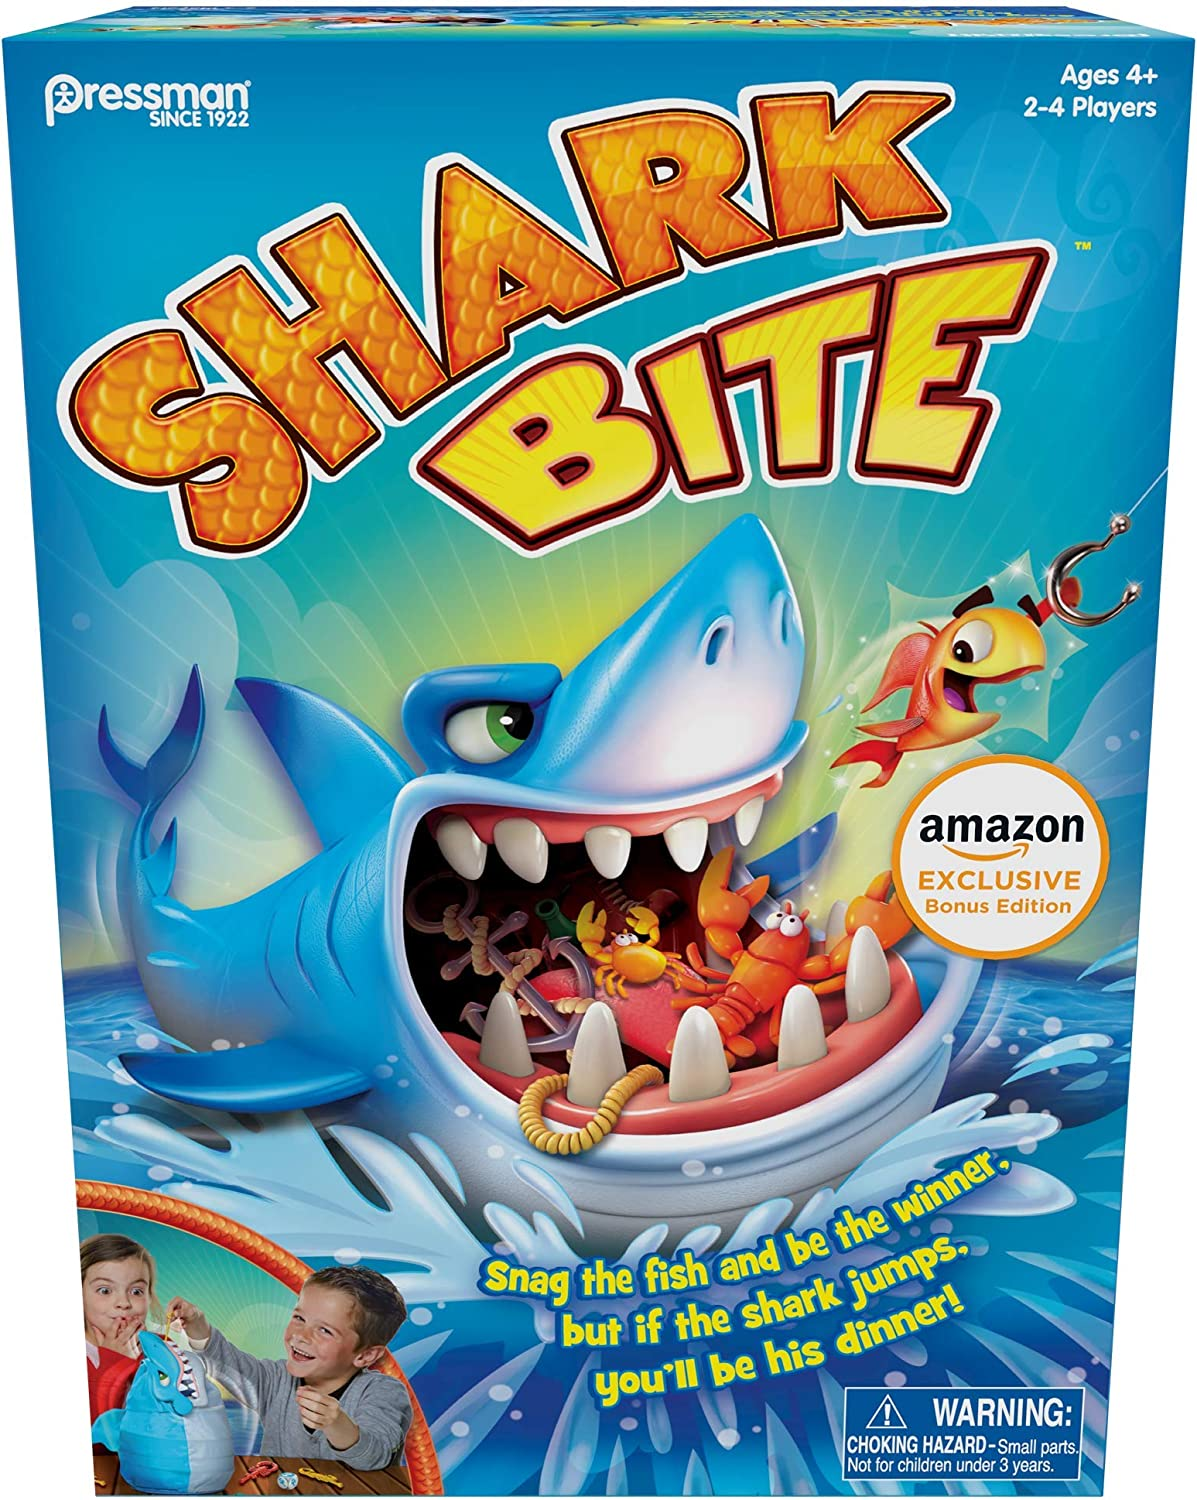 19. Shark Bite with Let's Go Fishin' Card Game